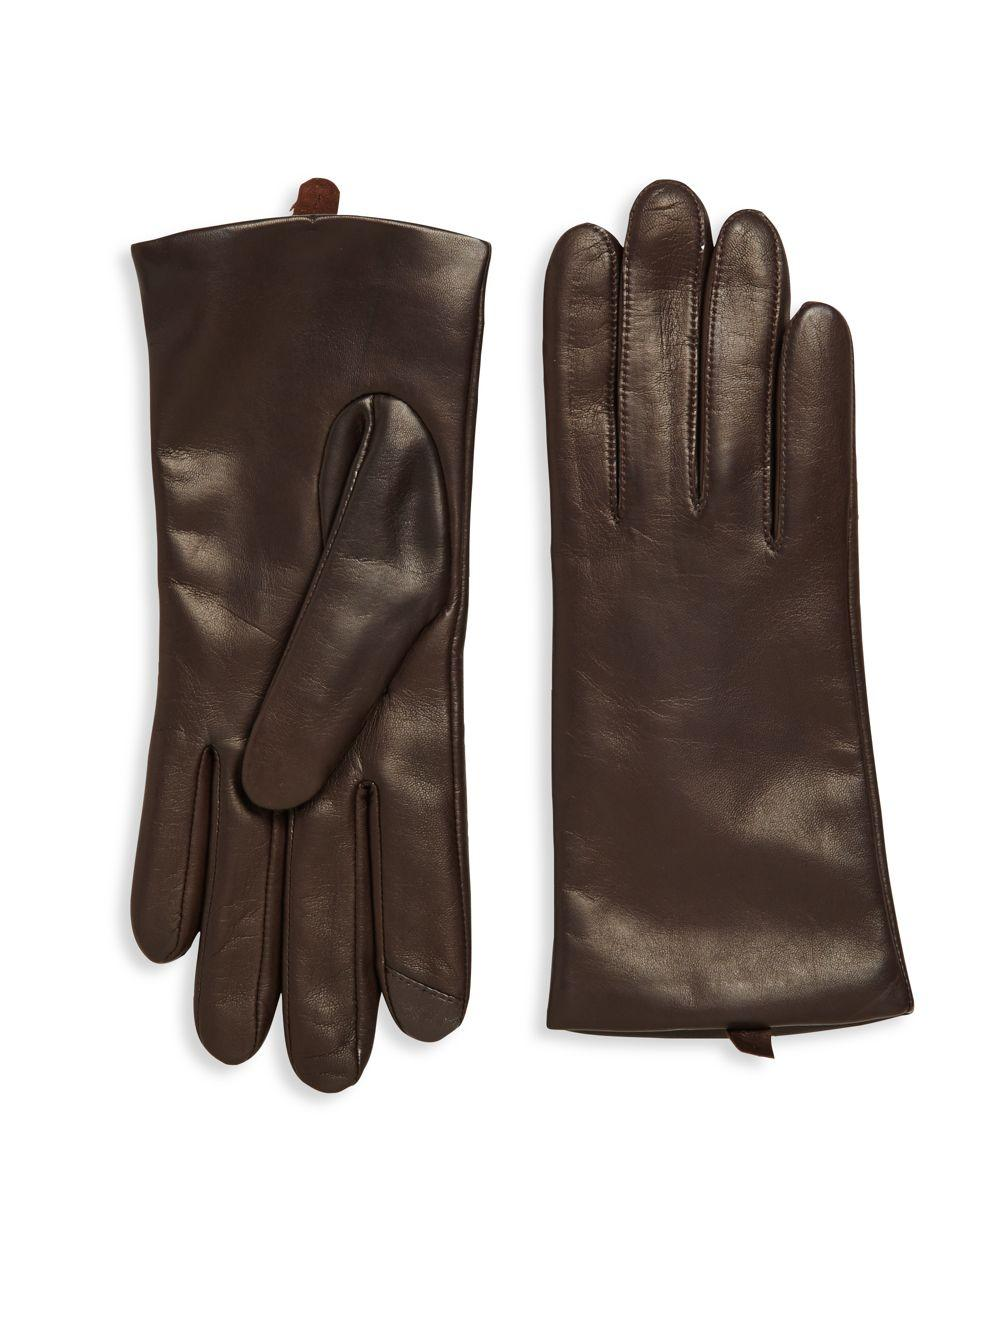 Saks fifth avenue Leather Gloves in Brown